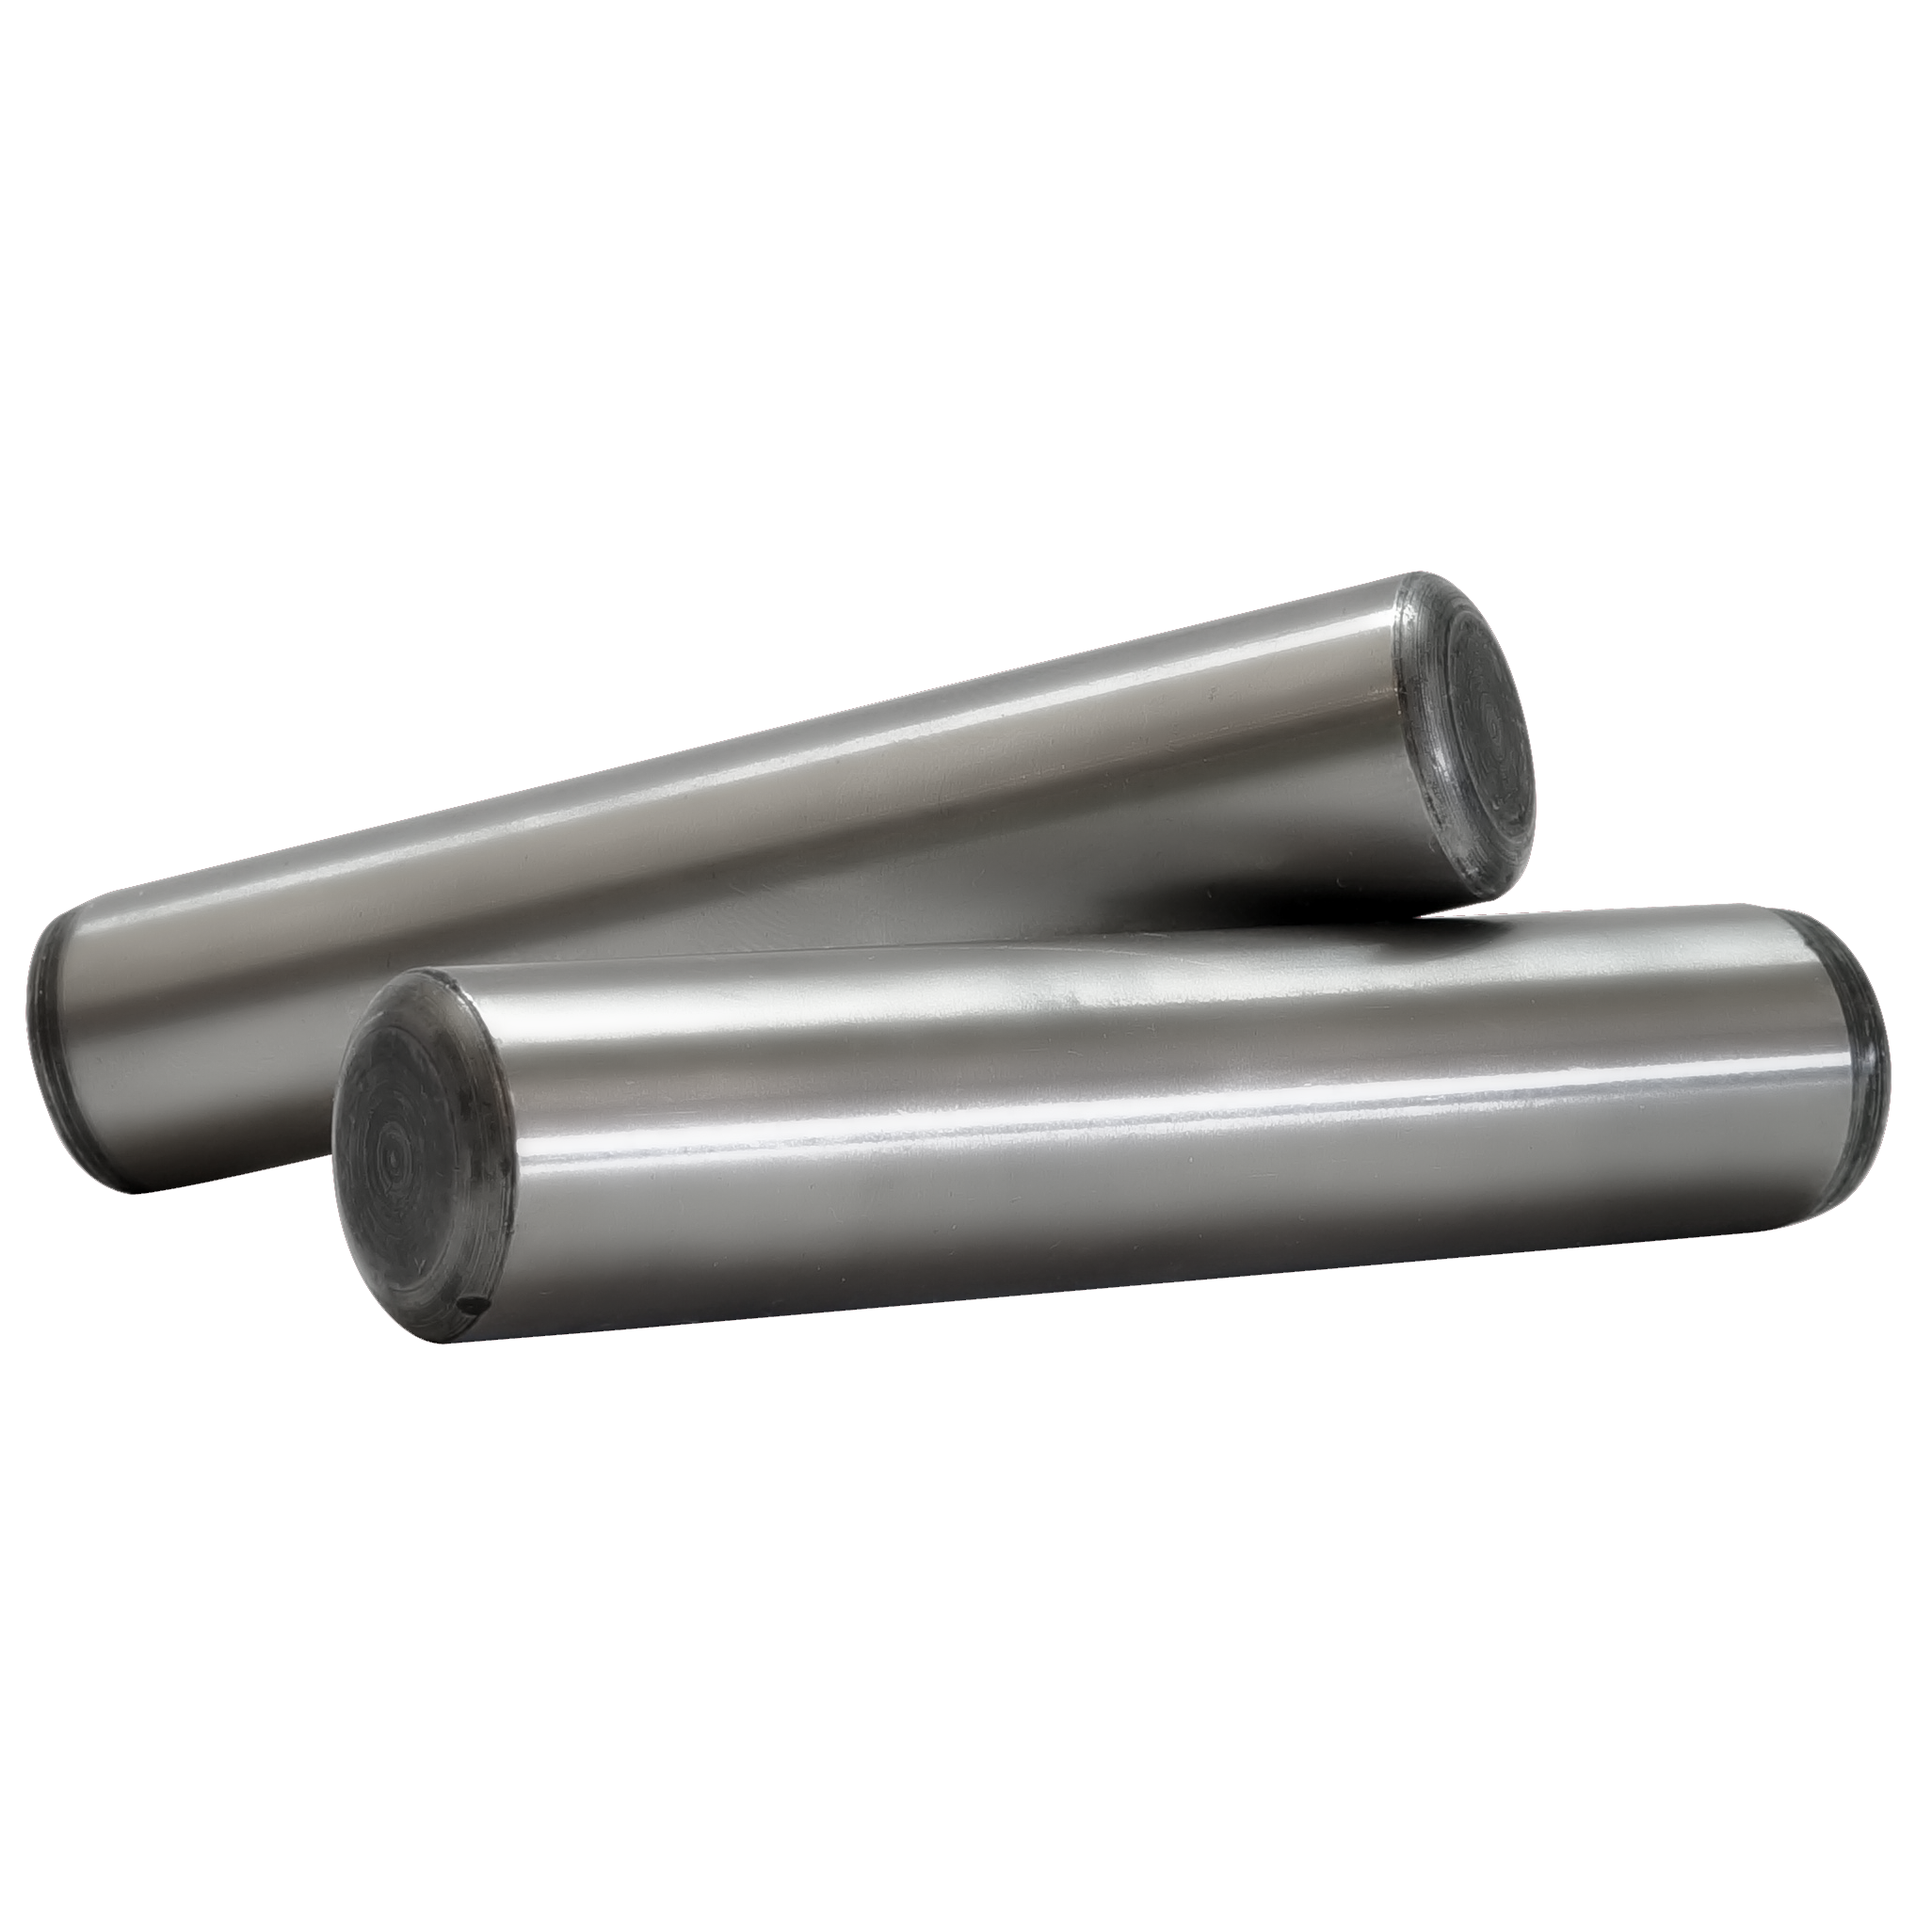 "1/8x1/2 ASME B18.8.2 Alloy Steel Dowel Pin Hardened Ground 0.0002"" Over Sized (Unbrako)"